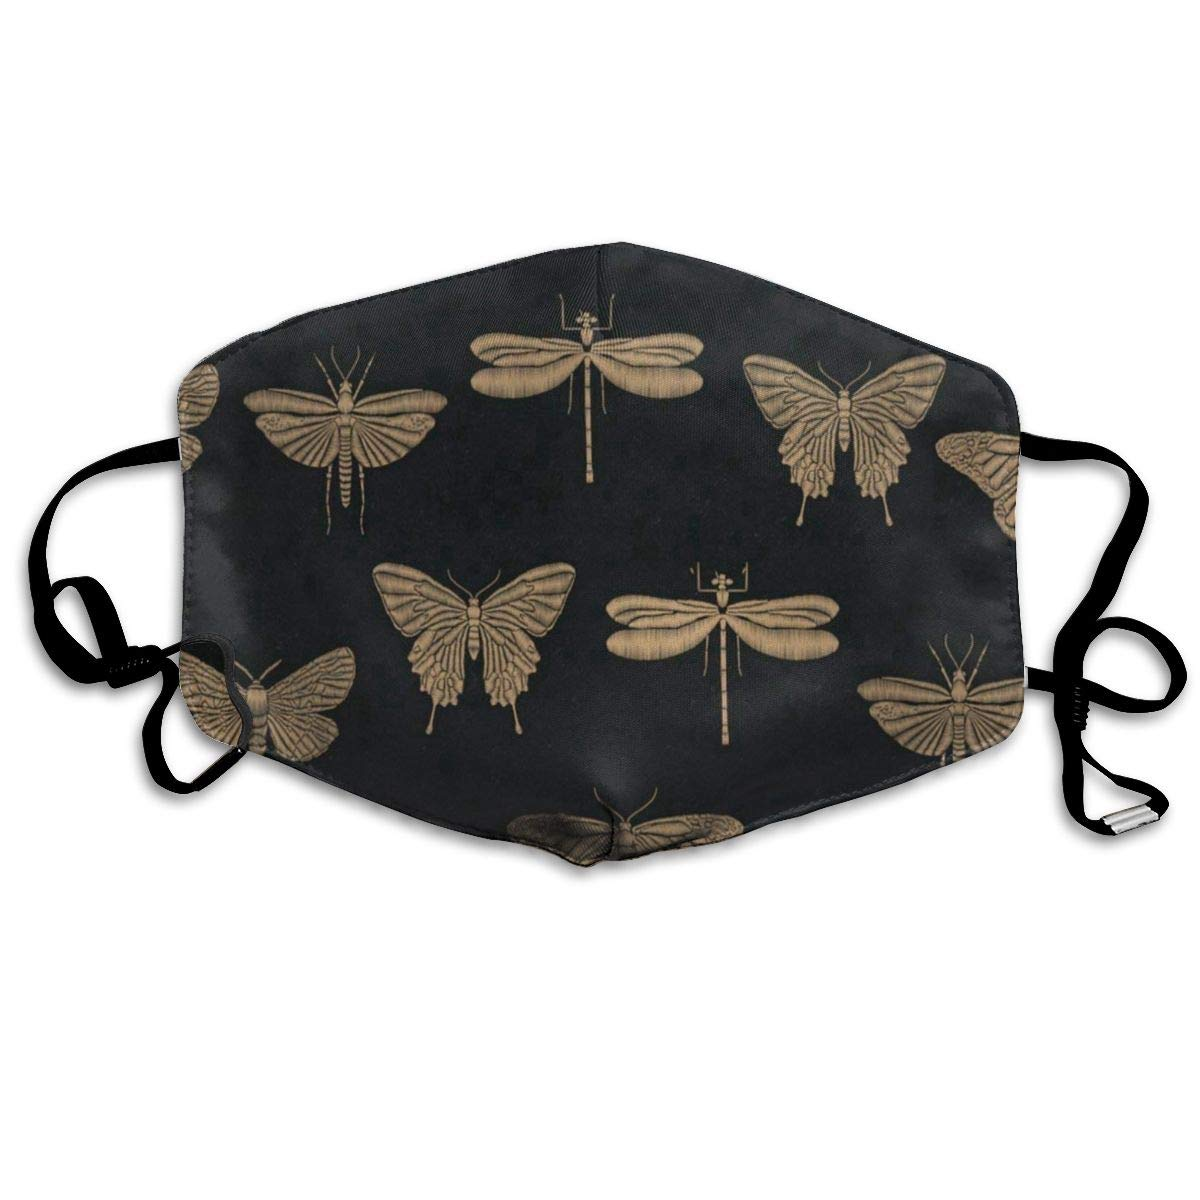 Adorable Mask Reusable Anti Dust Face Mouth Cover Golden Dragonfly Butterfly Mask Warm Windproof